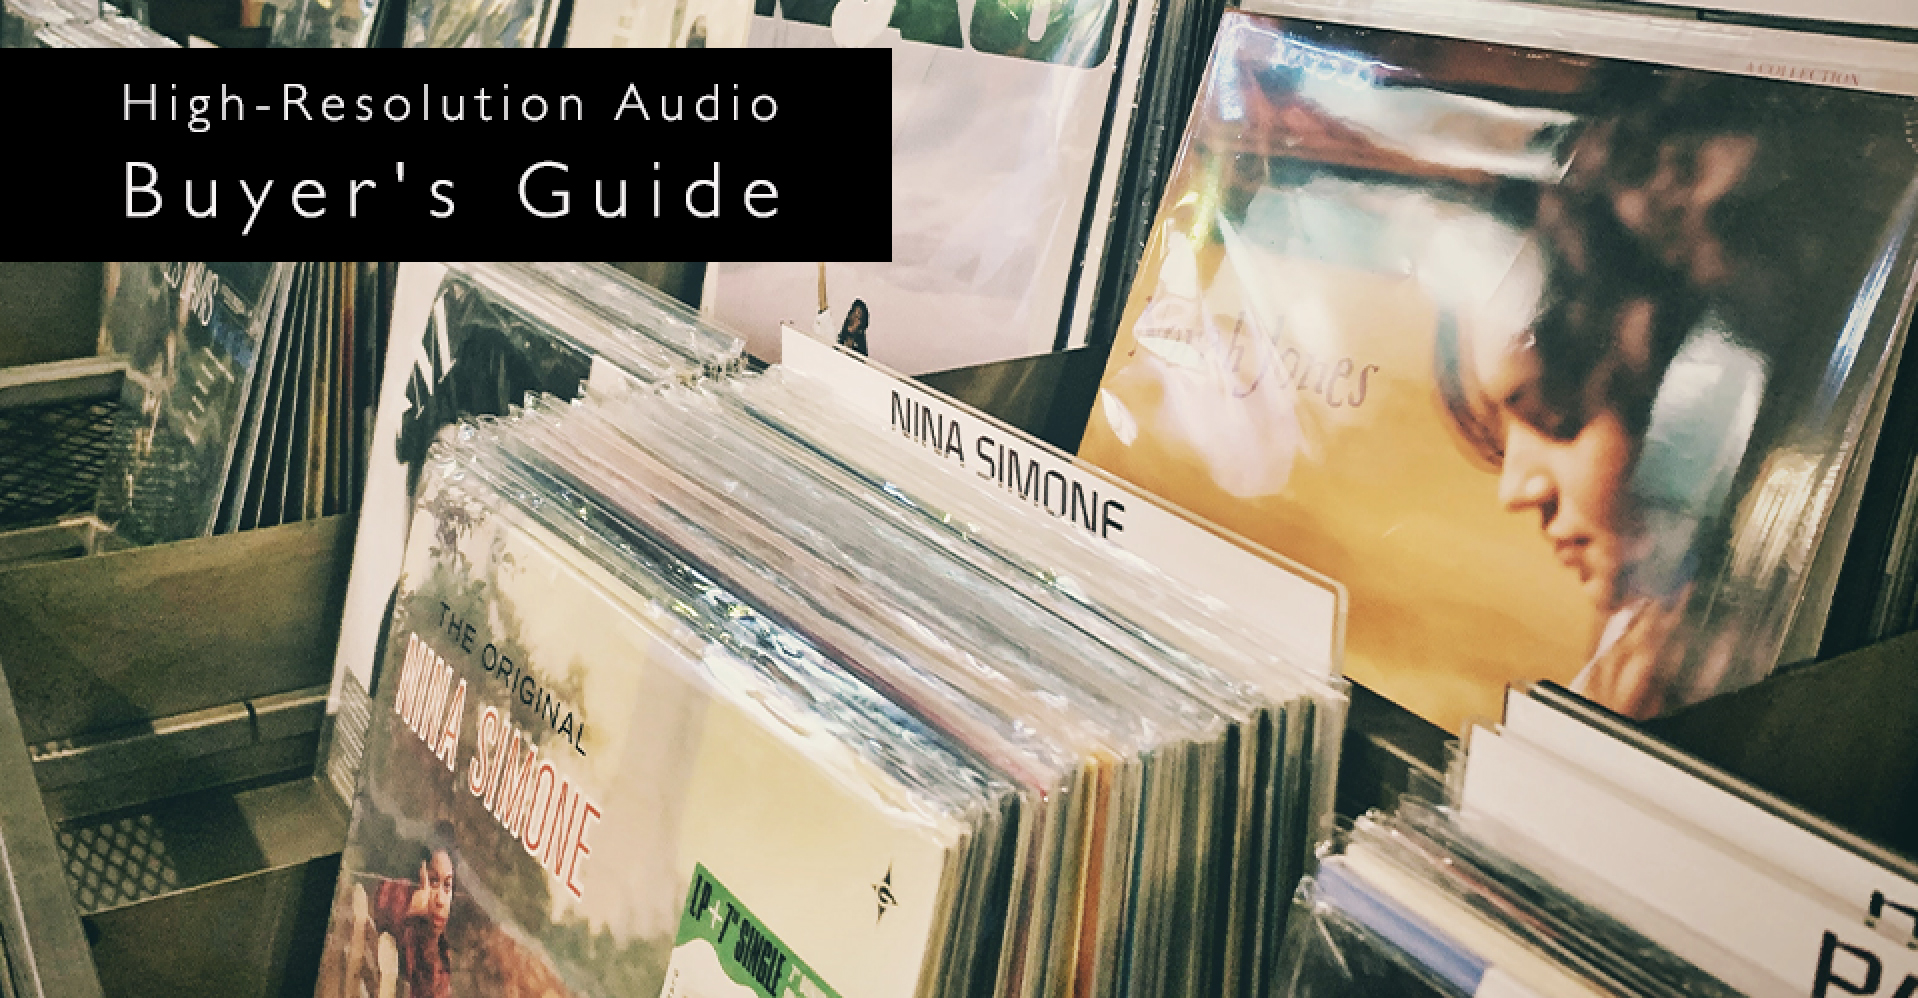 Buyer's Guide to High-Resolution Audio